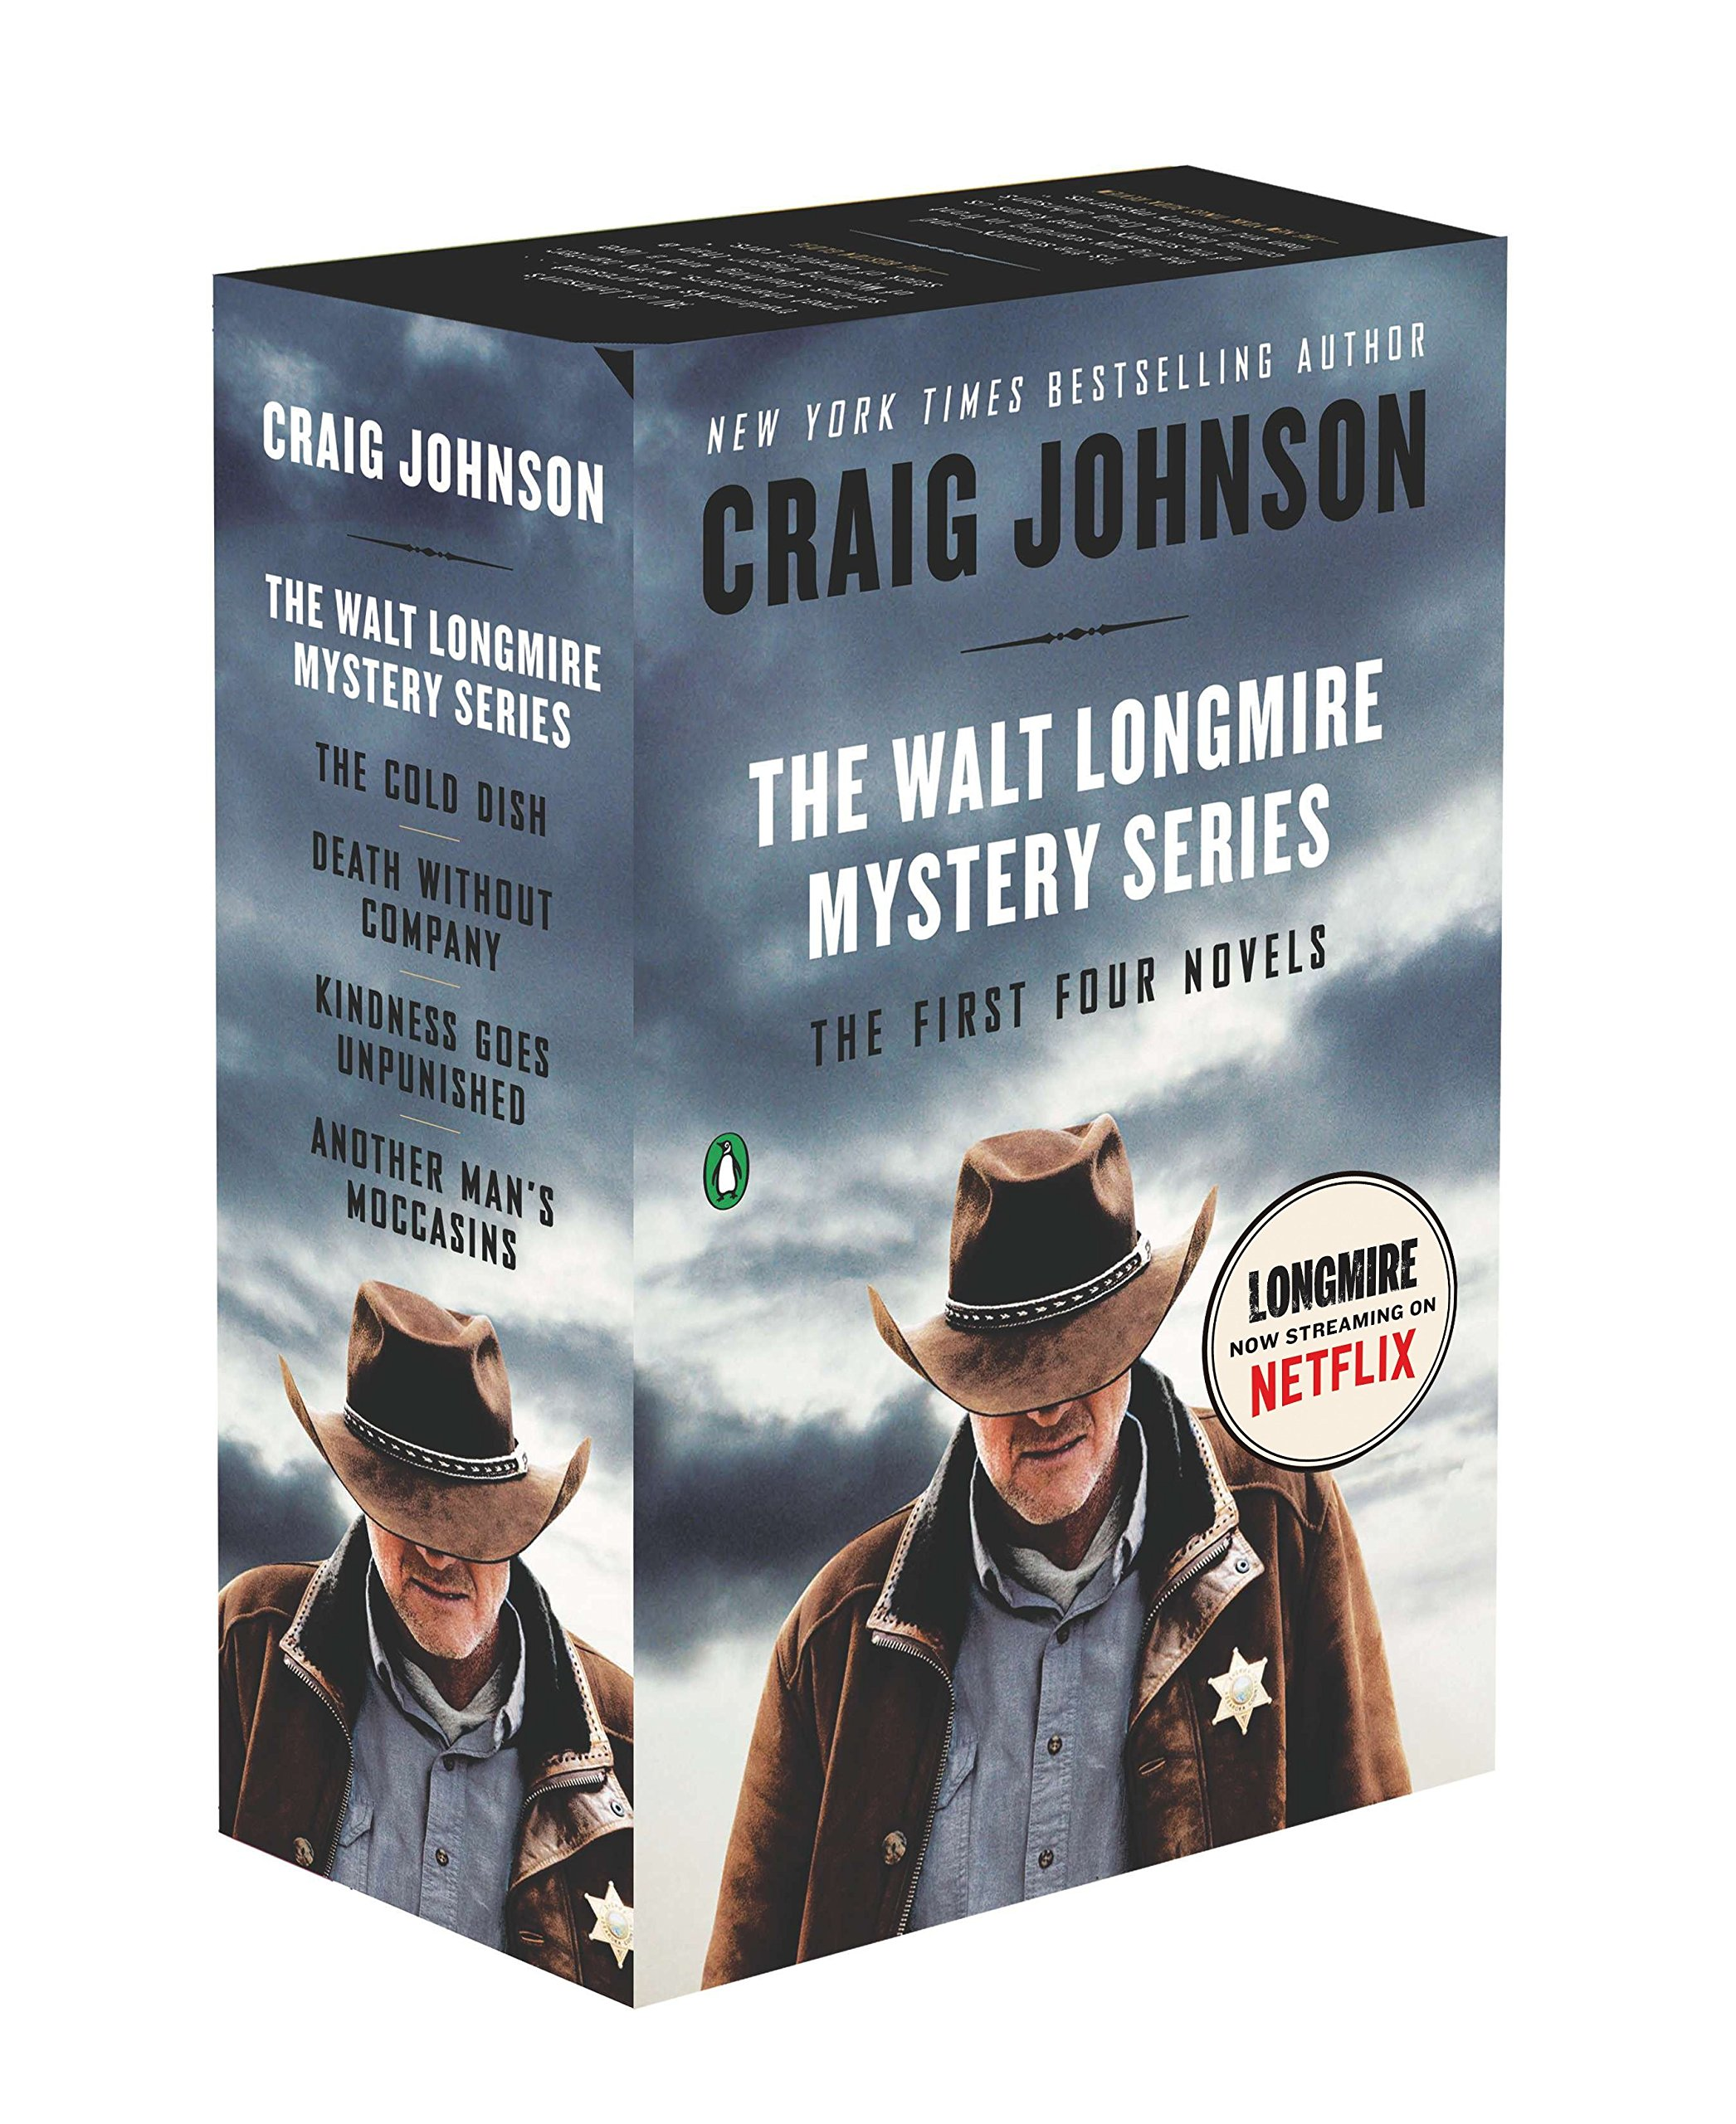 The Walt Longmire Mystery Series Boxed Set Volumes 1-4: The First Four Novels (Walt Longmire Mysteries) by Brand: Penguin Books